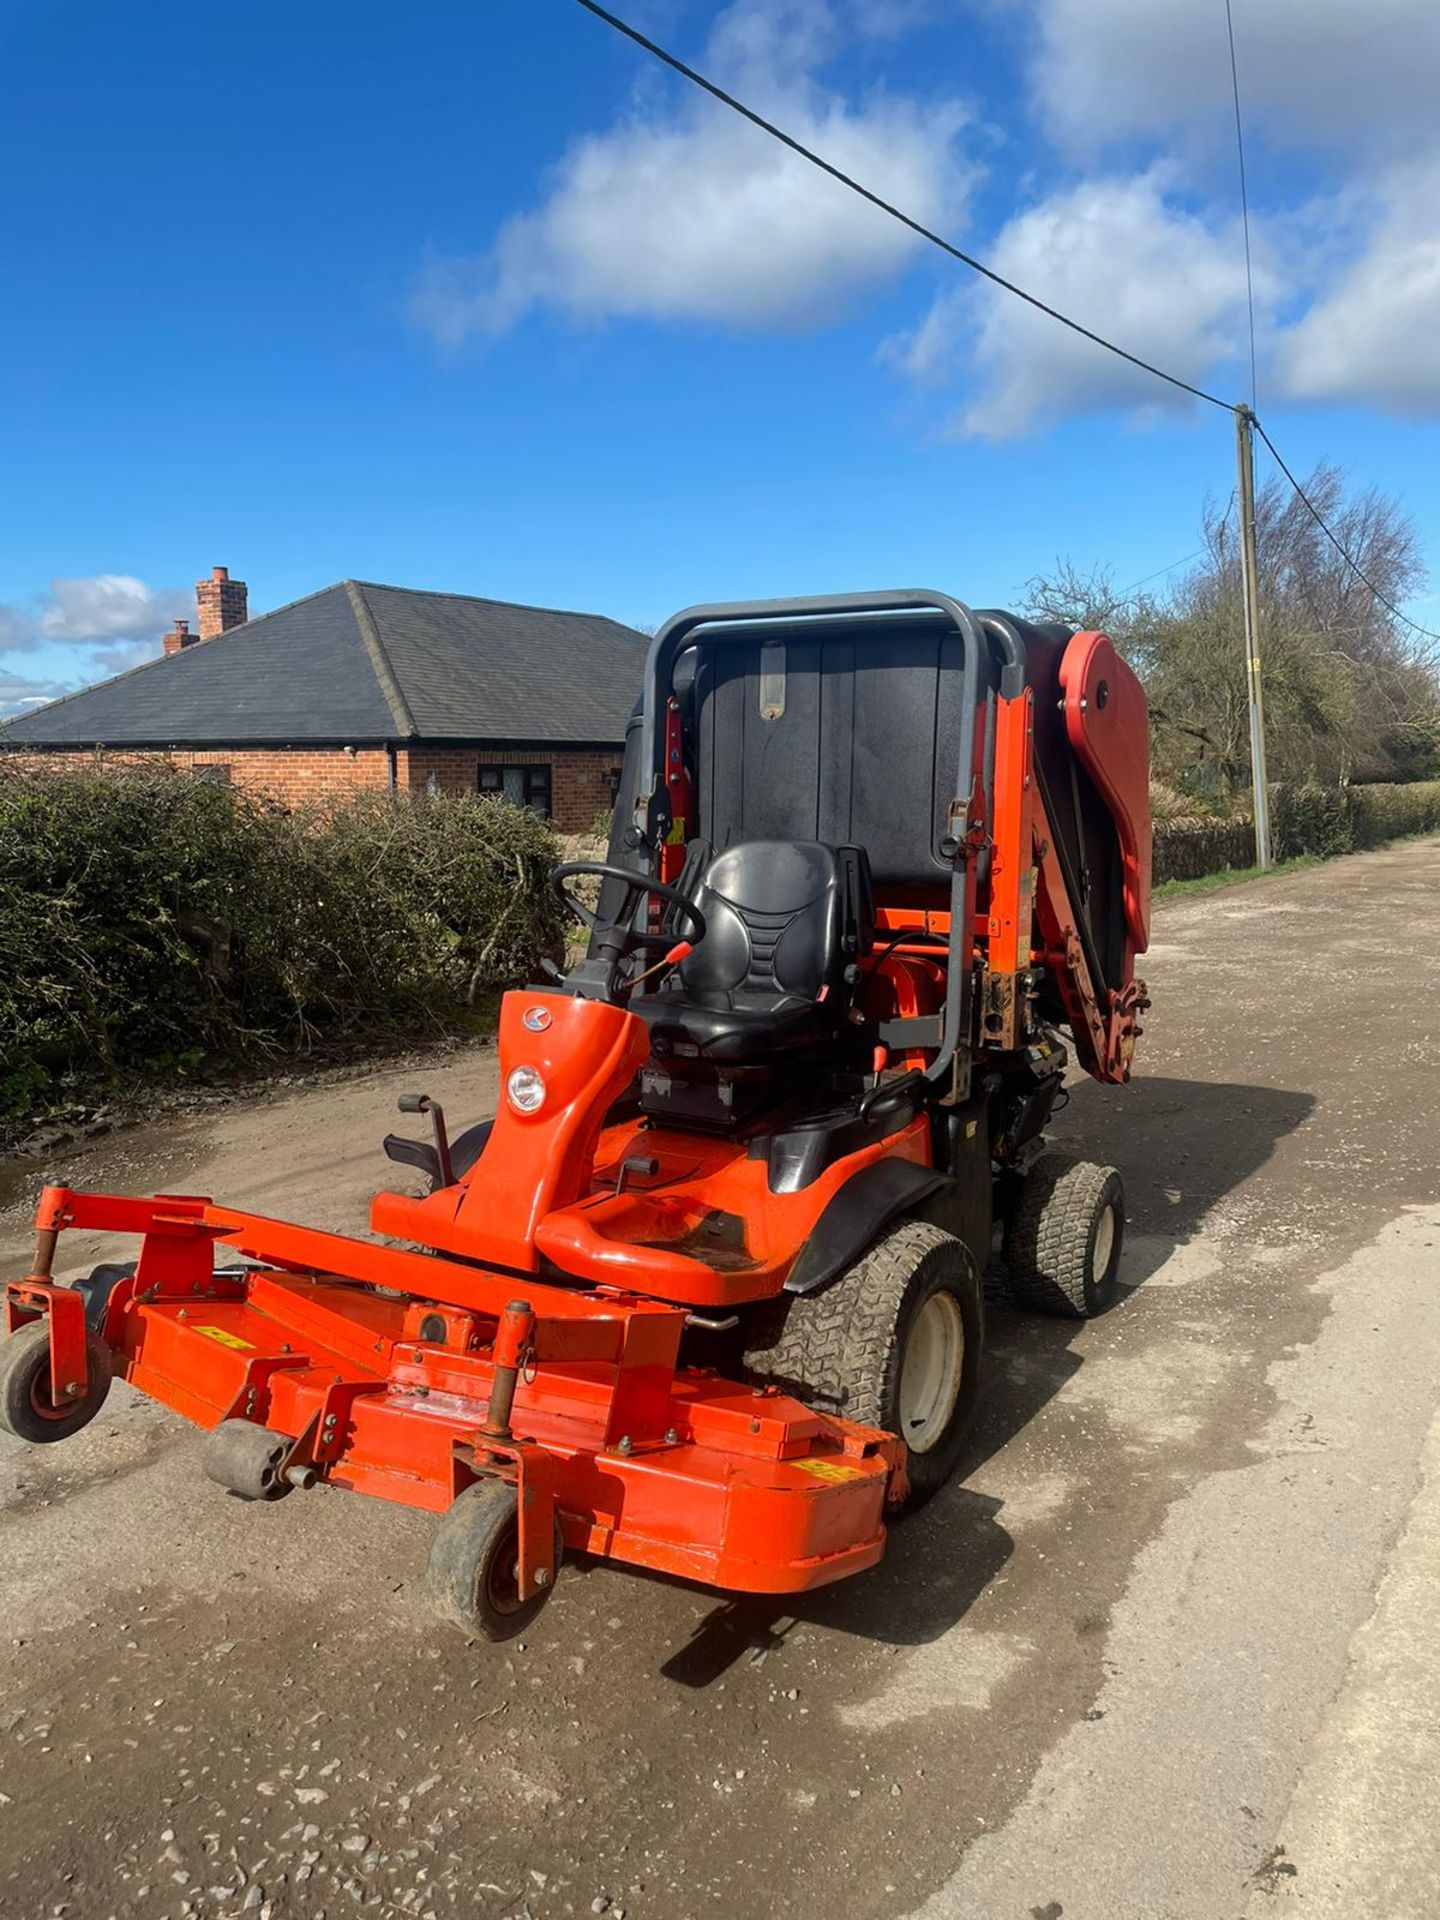 2011 KUBOTA F3680 OUT FRONT RIDE ON LAWN MOWER HIGH TIP COLLECTOR, 4 WHEEL DRIVE, PLUS VAT - Image 3 of 7